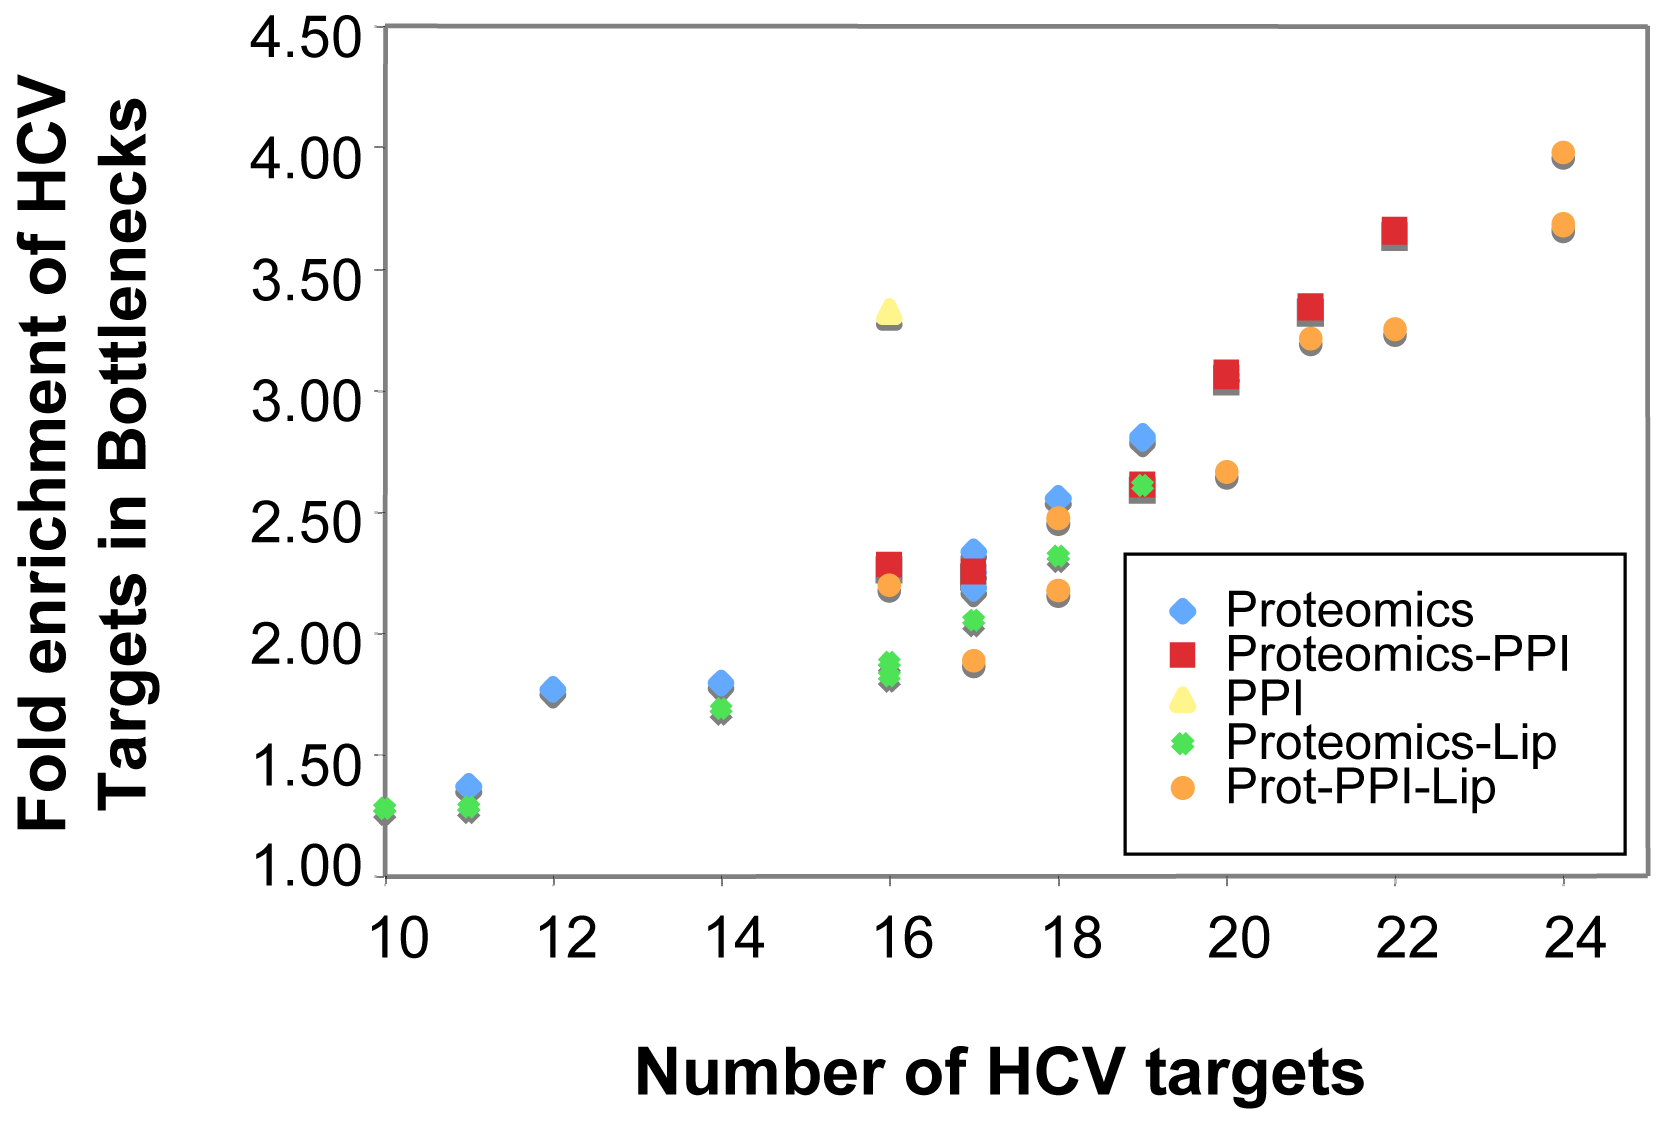 Integration of different network types improves identification of important nodes in HCV infection.